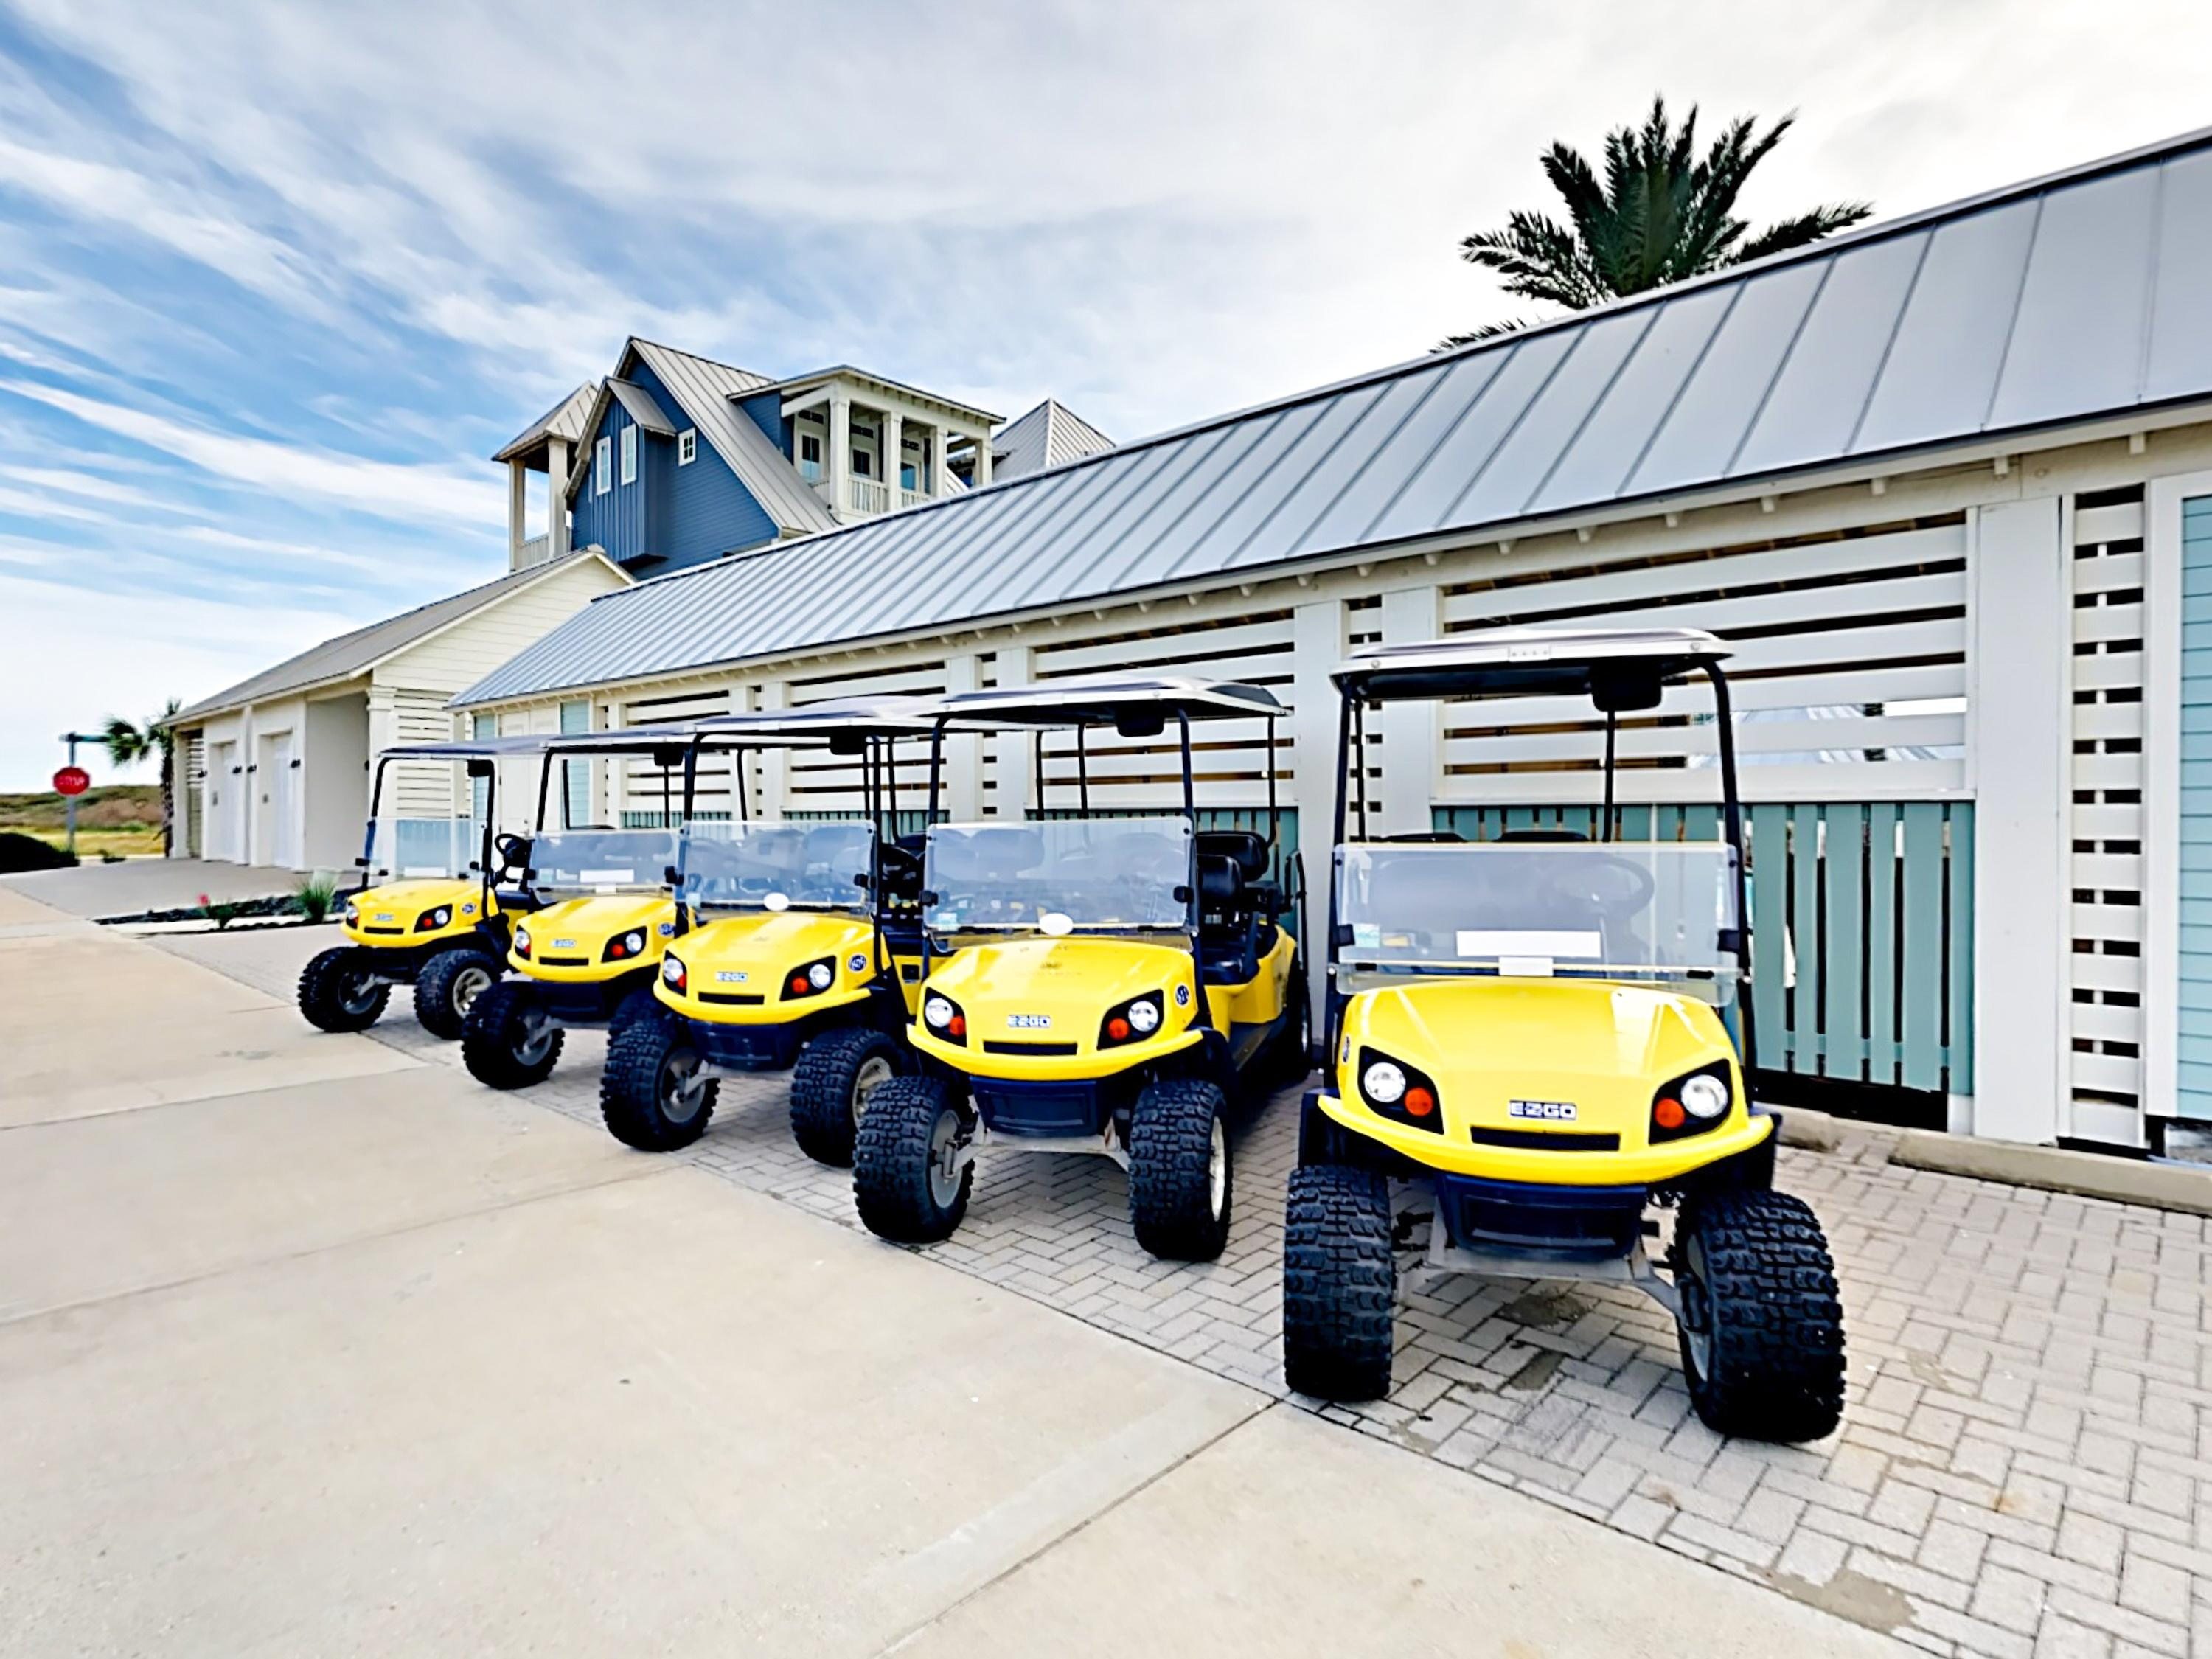 During the summer months, the resort also has rental items such as golf carts, bicycles, beach chairs, and umbrellas.